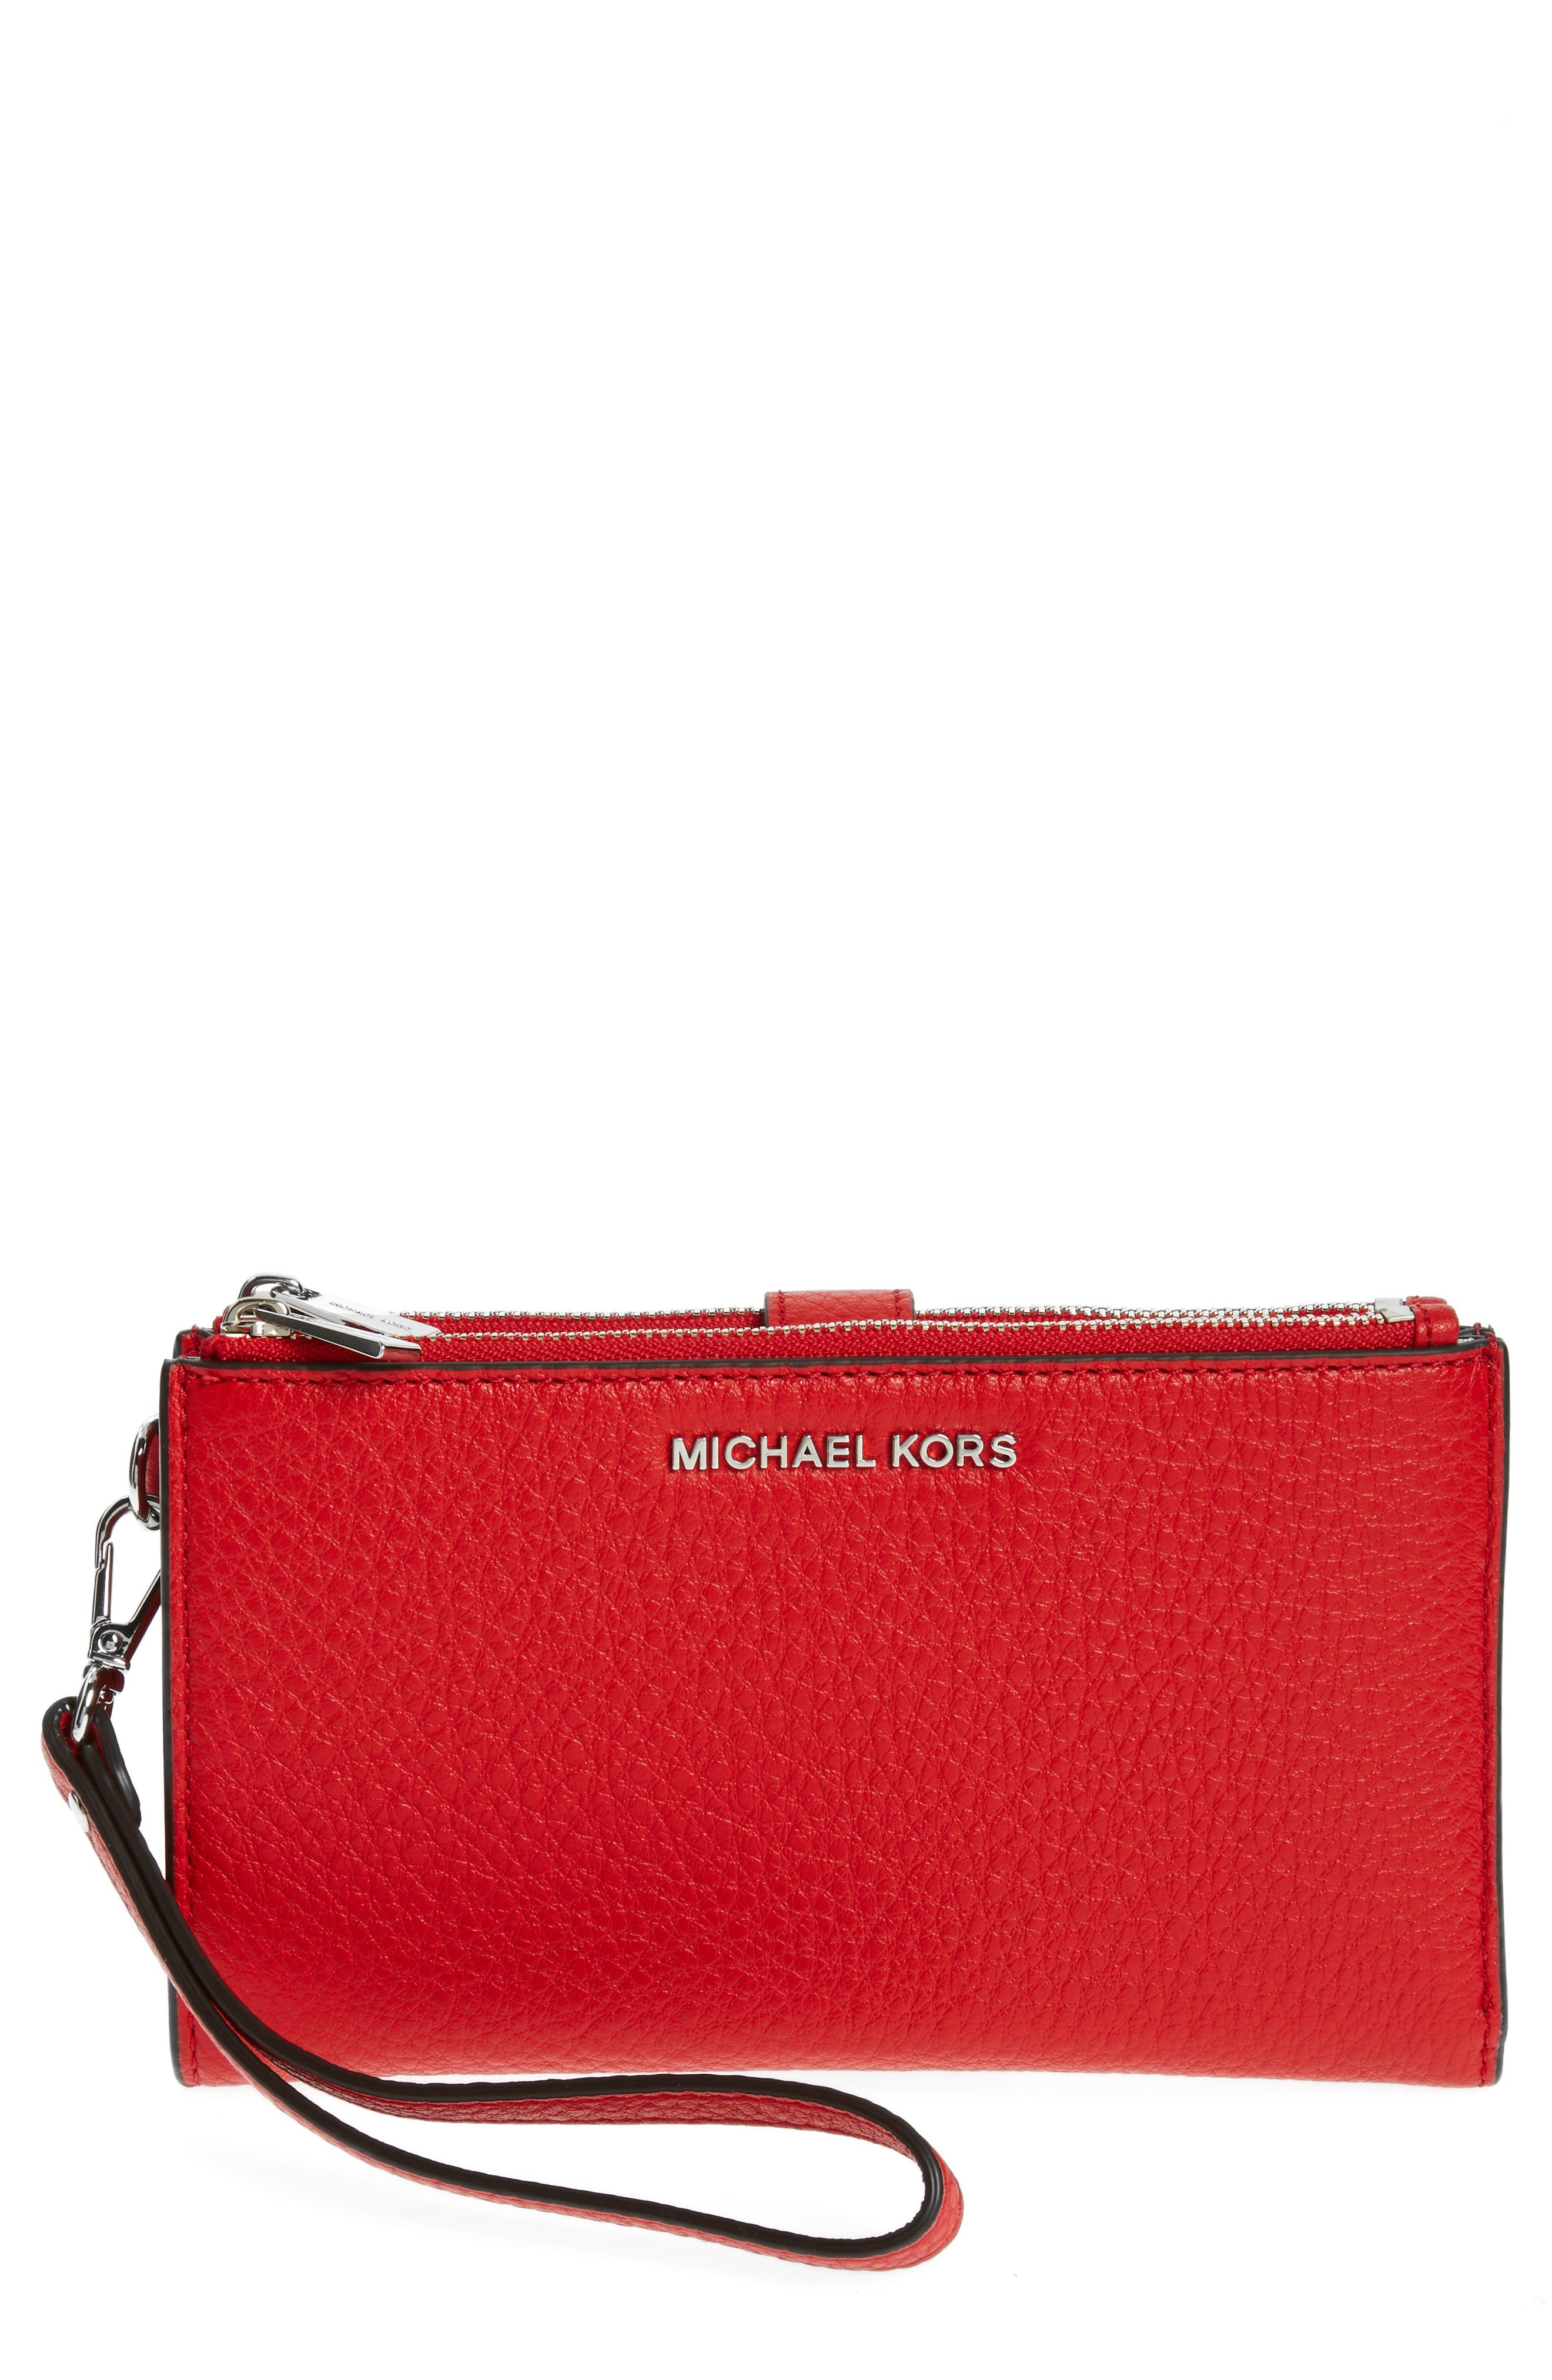 Adele Leather Wristlet,                             Main thumbnail 10, color,